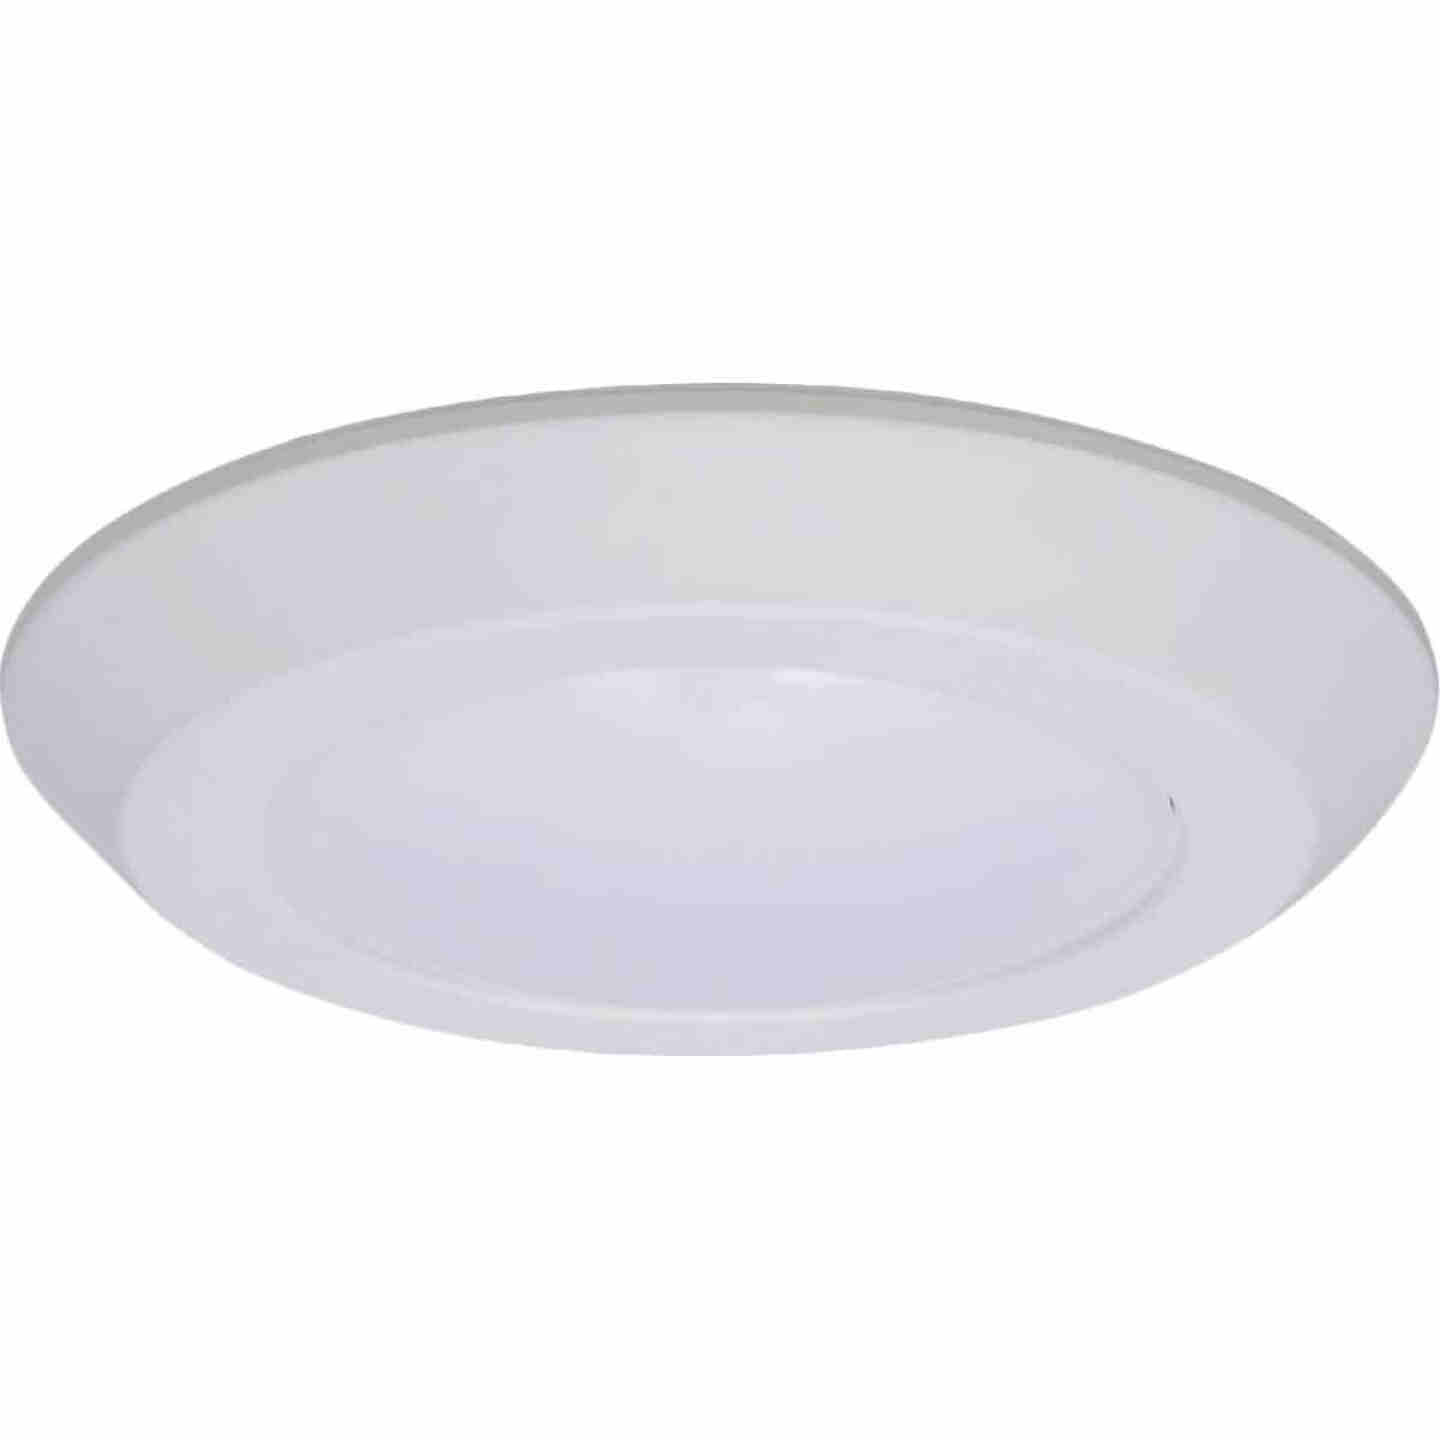 Halo 6 In. Retrofit Flush Mount Selectable Color Temperature LED Recessed Light Kit, 812 Lm. Image 1